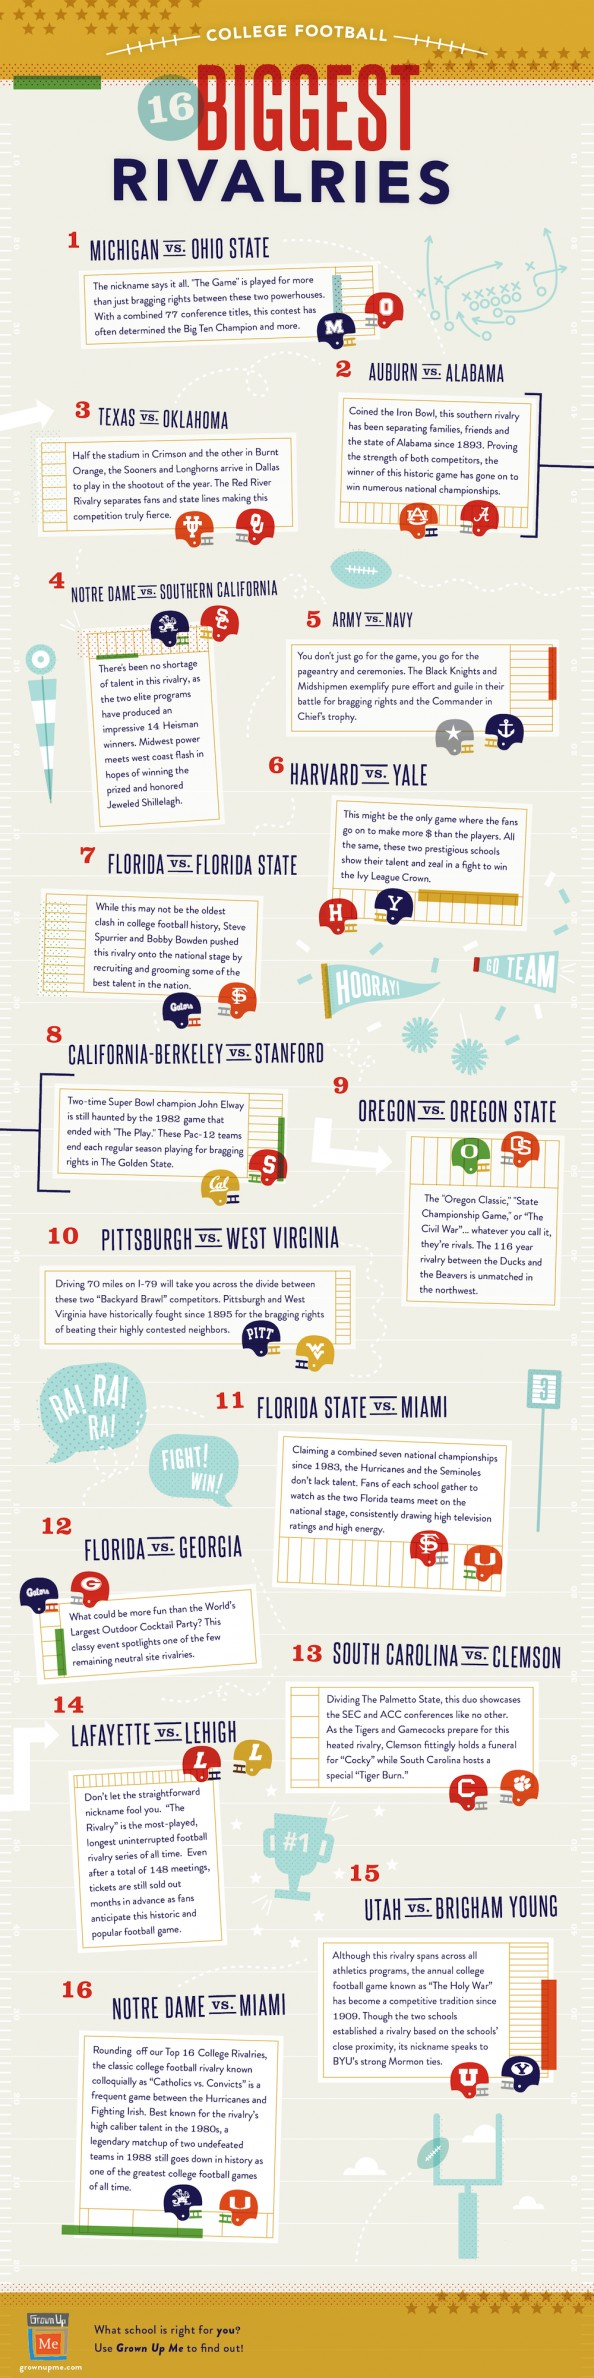 16 Biggest College Football Rivalries | Infographics